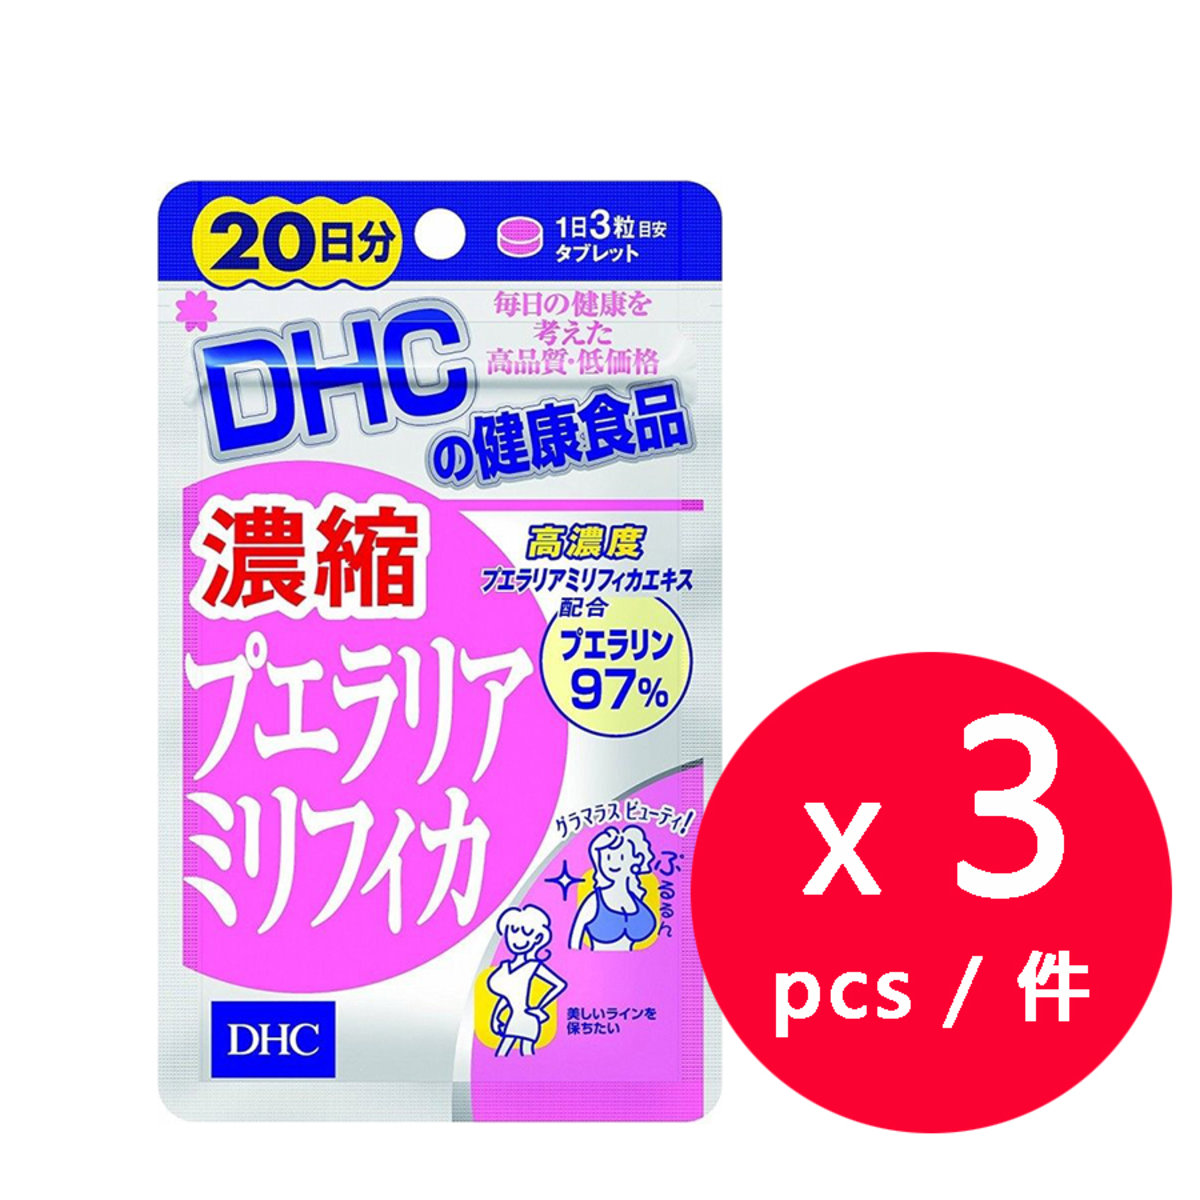 DHC Concentrated Pueraria milifica (20 Days) x 3 packs (Parallel Import)